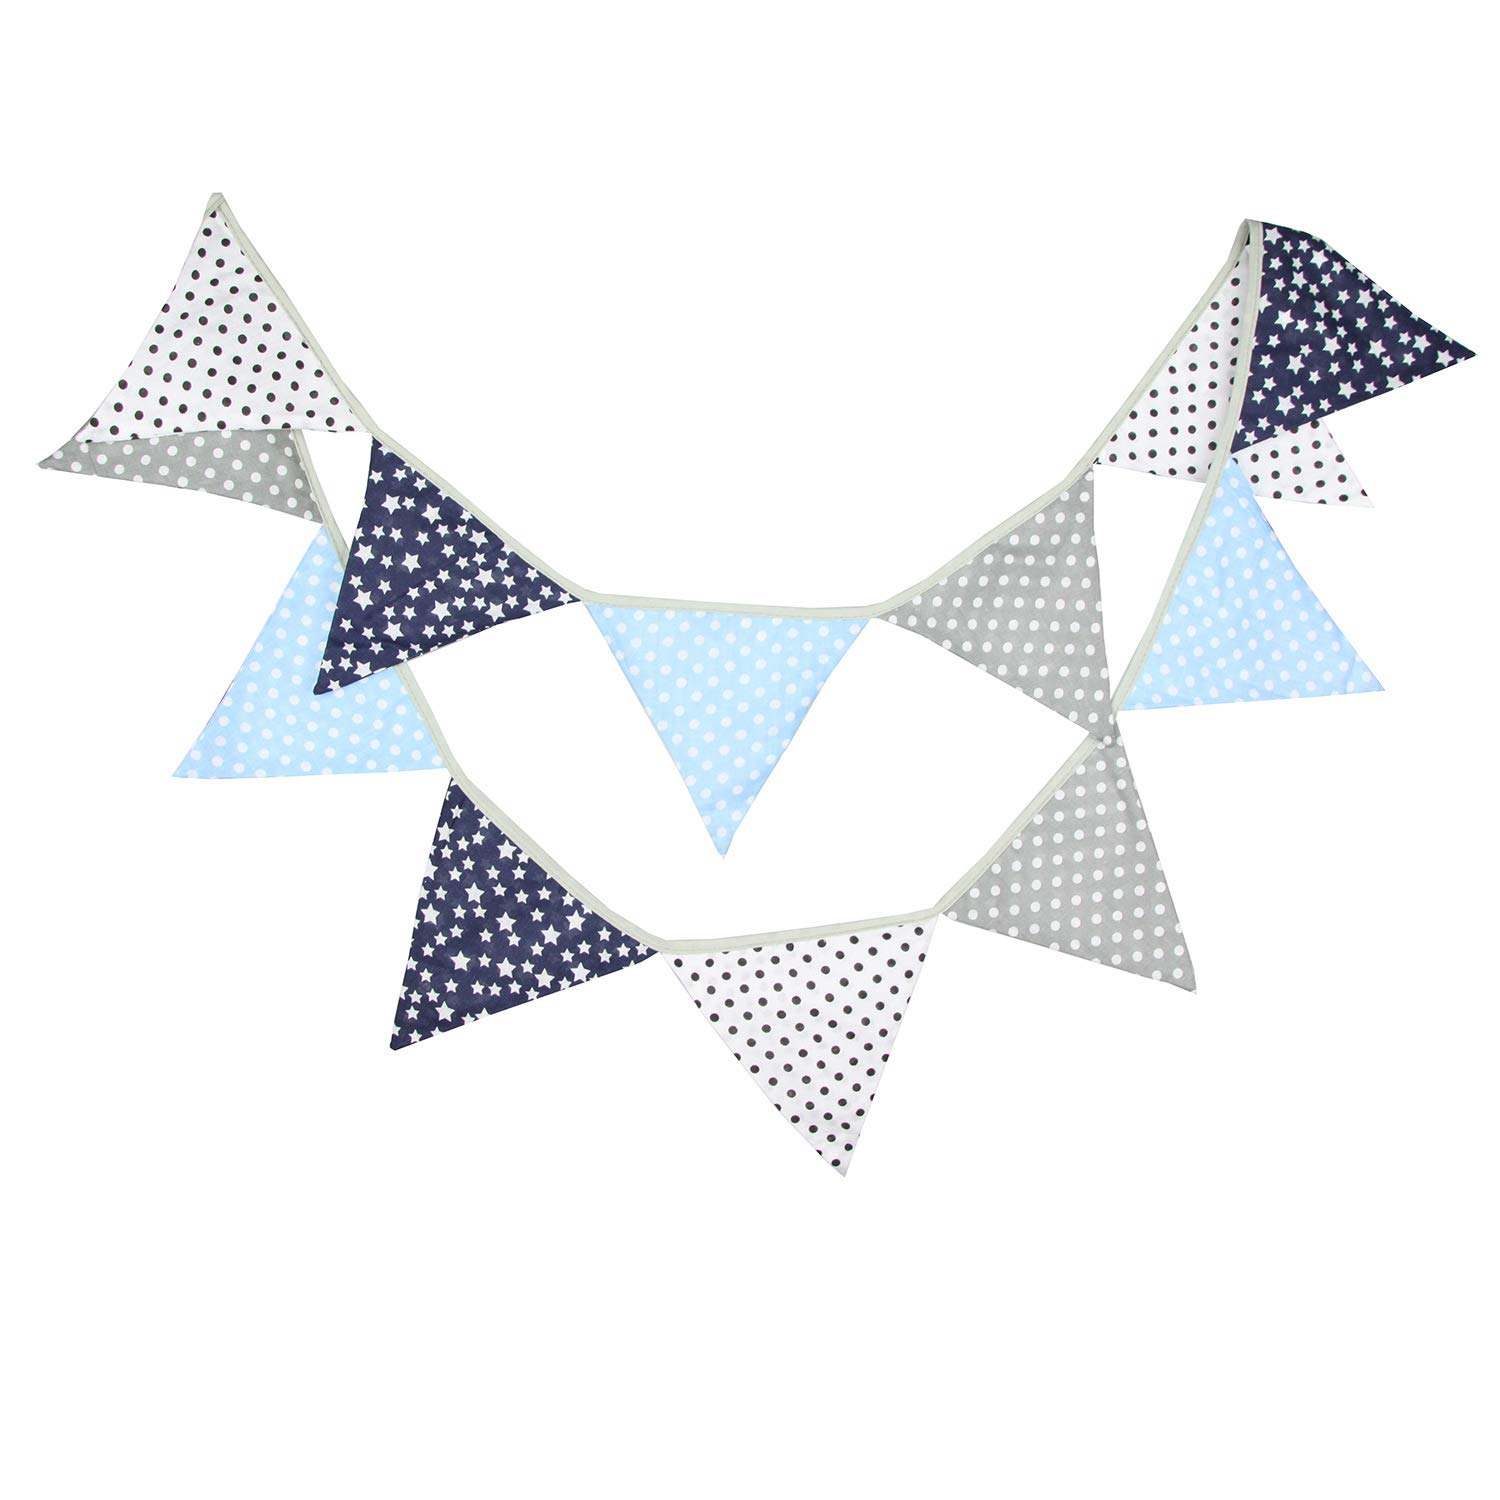 10 Feet Navy Blue Gray Nautical Party Bunting Banner for Wedding Garland Boy Girl Baby Shower Party Backrop Kids Birthday Supplies Hanging Pennant Bridal Shower Party Decoration AllHeartDesires